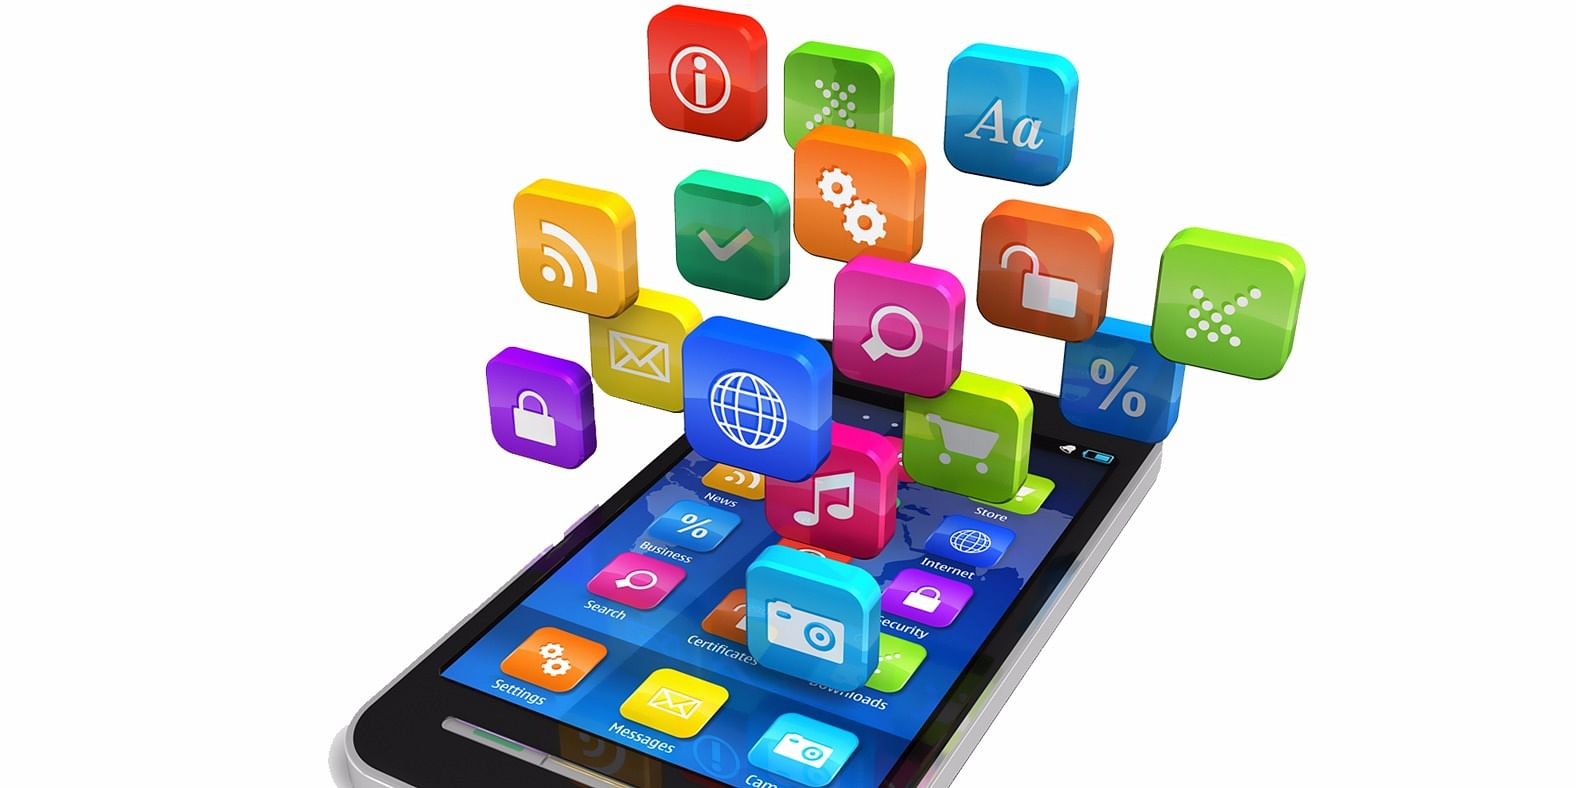 hybrid apps have fast gained fondness amongst some the world s best mobile app developers there are many reasons why mobile app development companies see